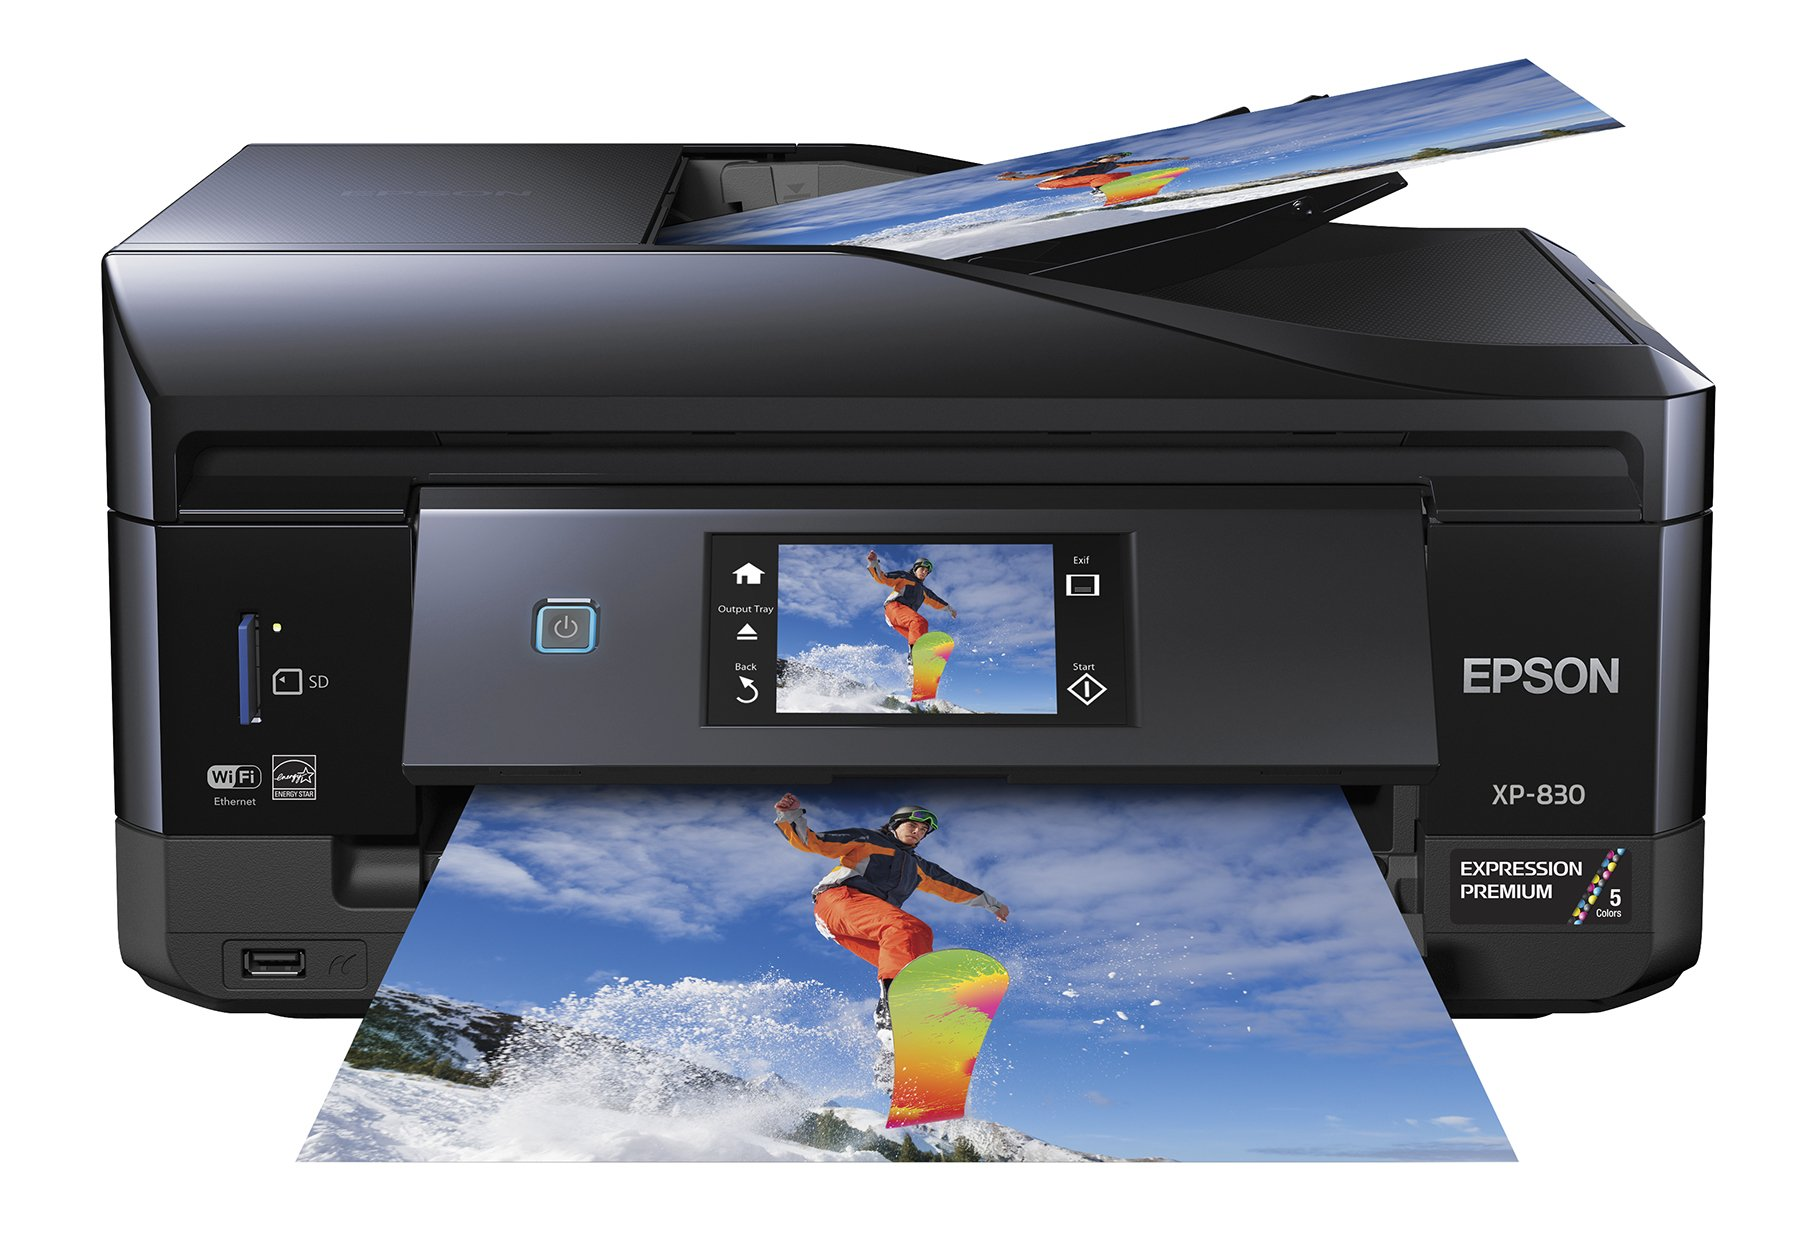 Epson XP-830 Wireless Color Photo Printer with Scanner, Copier & Fax (C11CE78201) by Epson